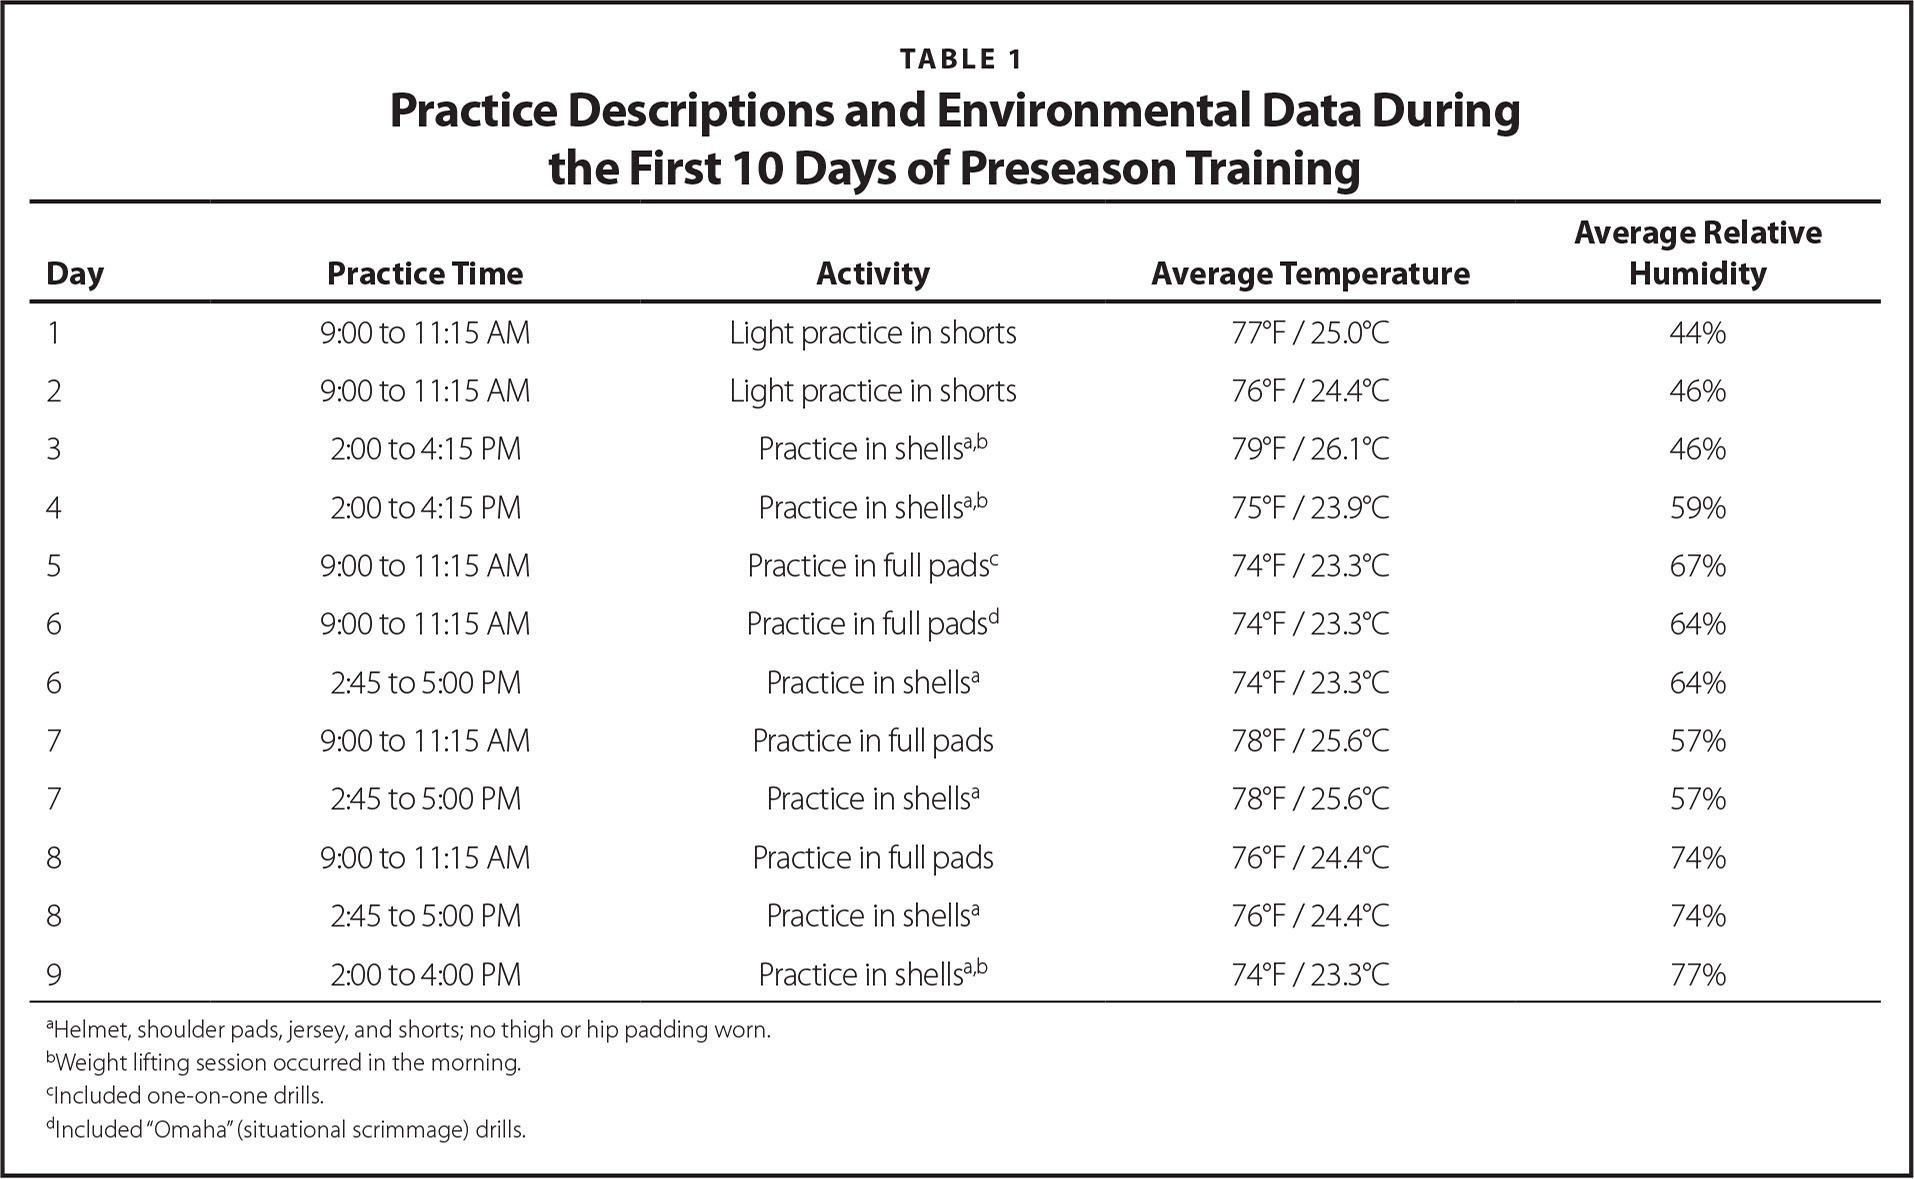 Practice Descriptions and Environmental Data During the First 10 Days of Preseason Training